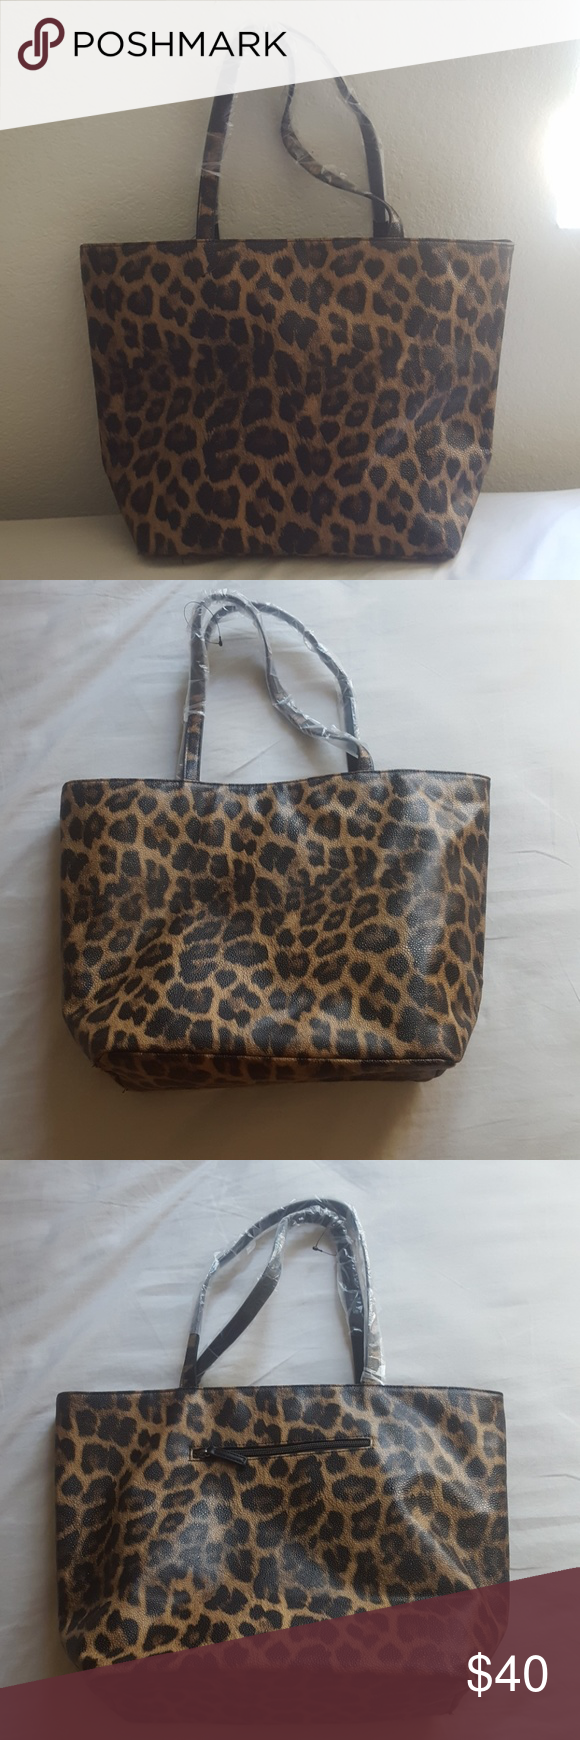 5f5720cb9114 Chico leopard tote bag Brand new without tag. Chico leopard design large tote  bag Chico's Bags Totes